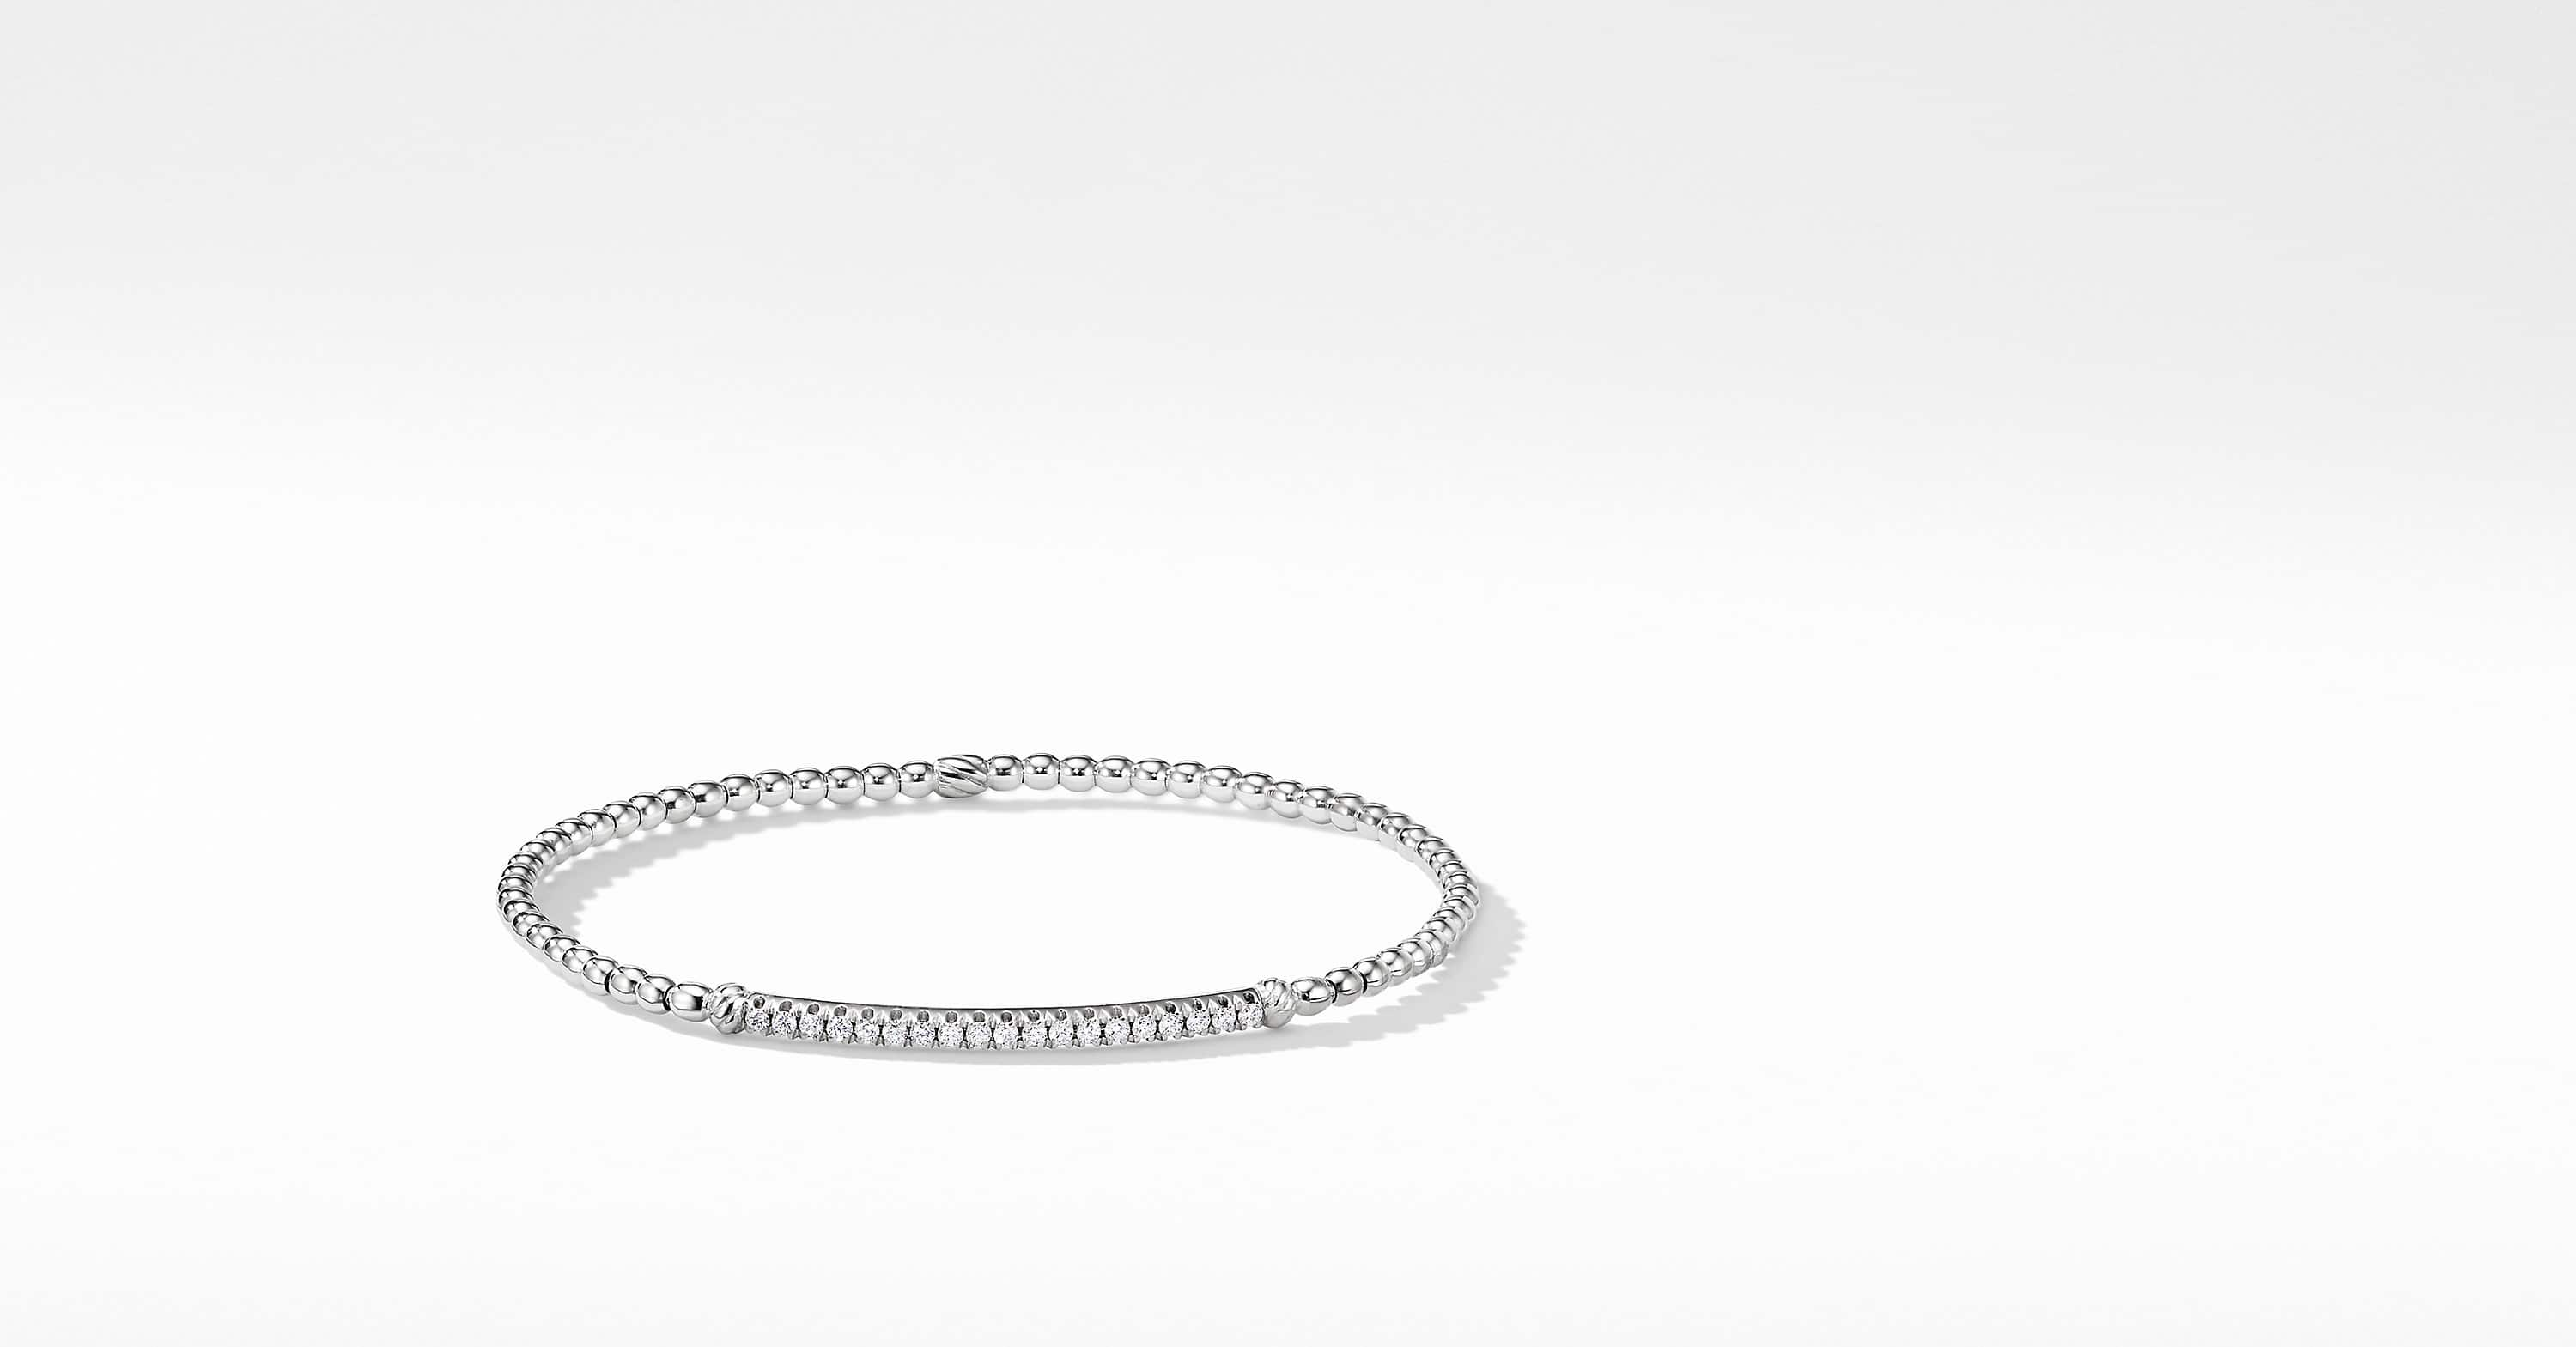 Petite Pavéflex Bracelet in 18K White Gold with Diamonds